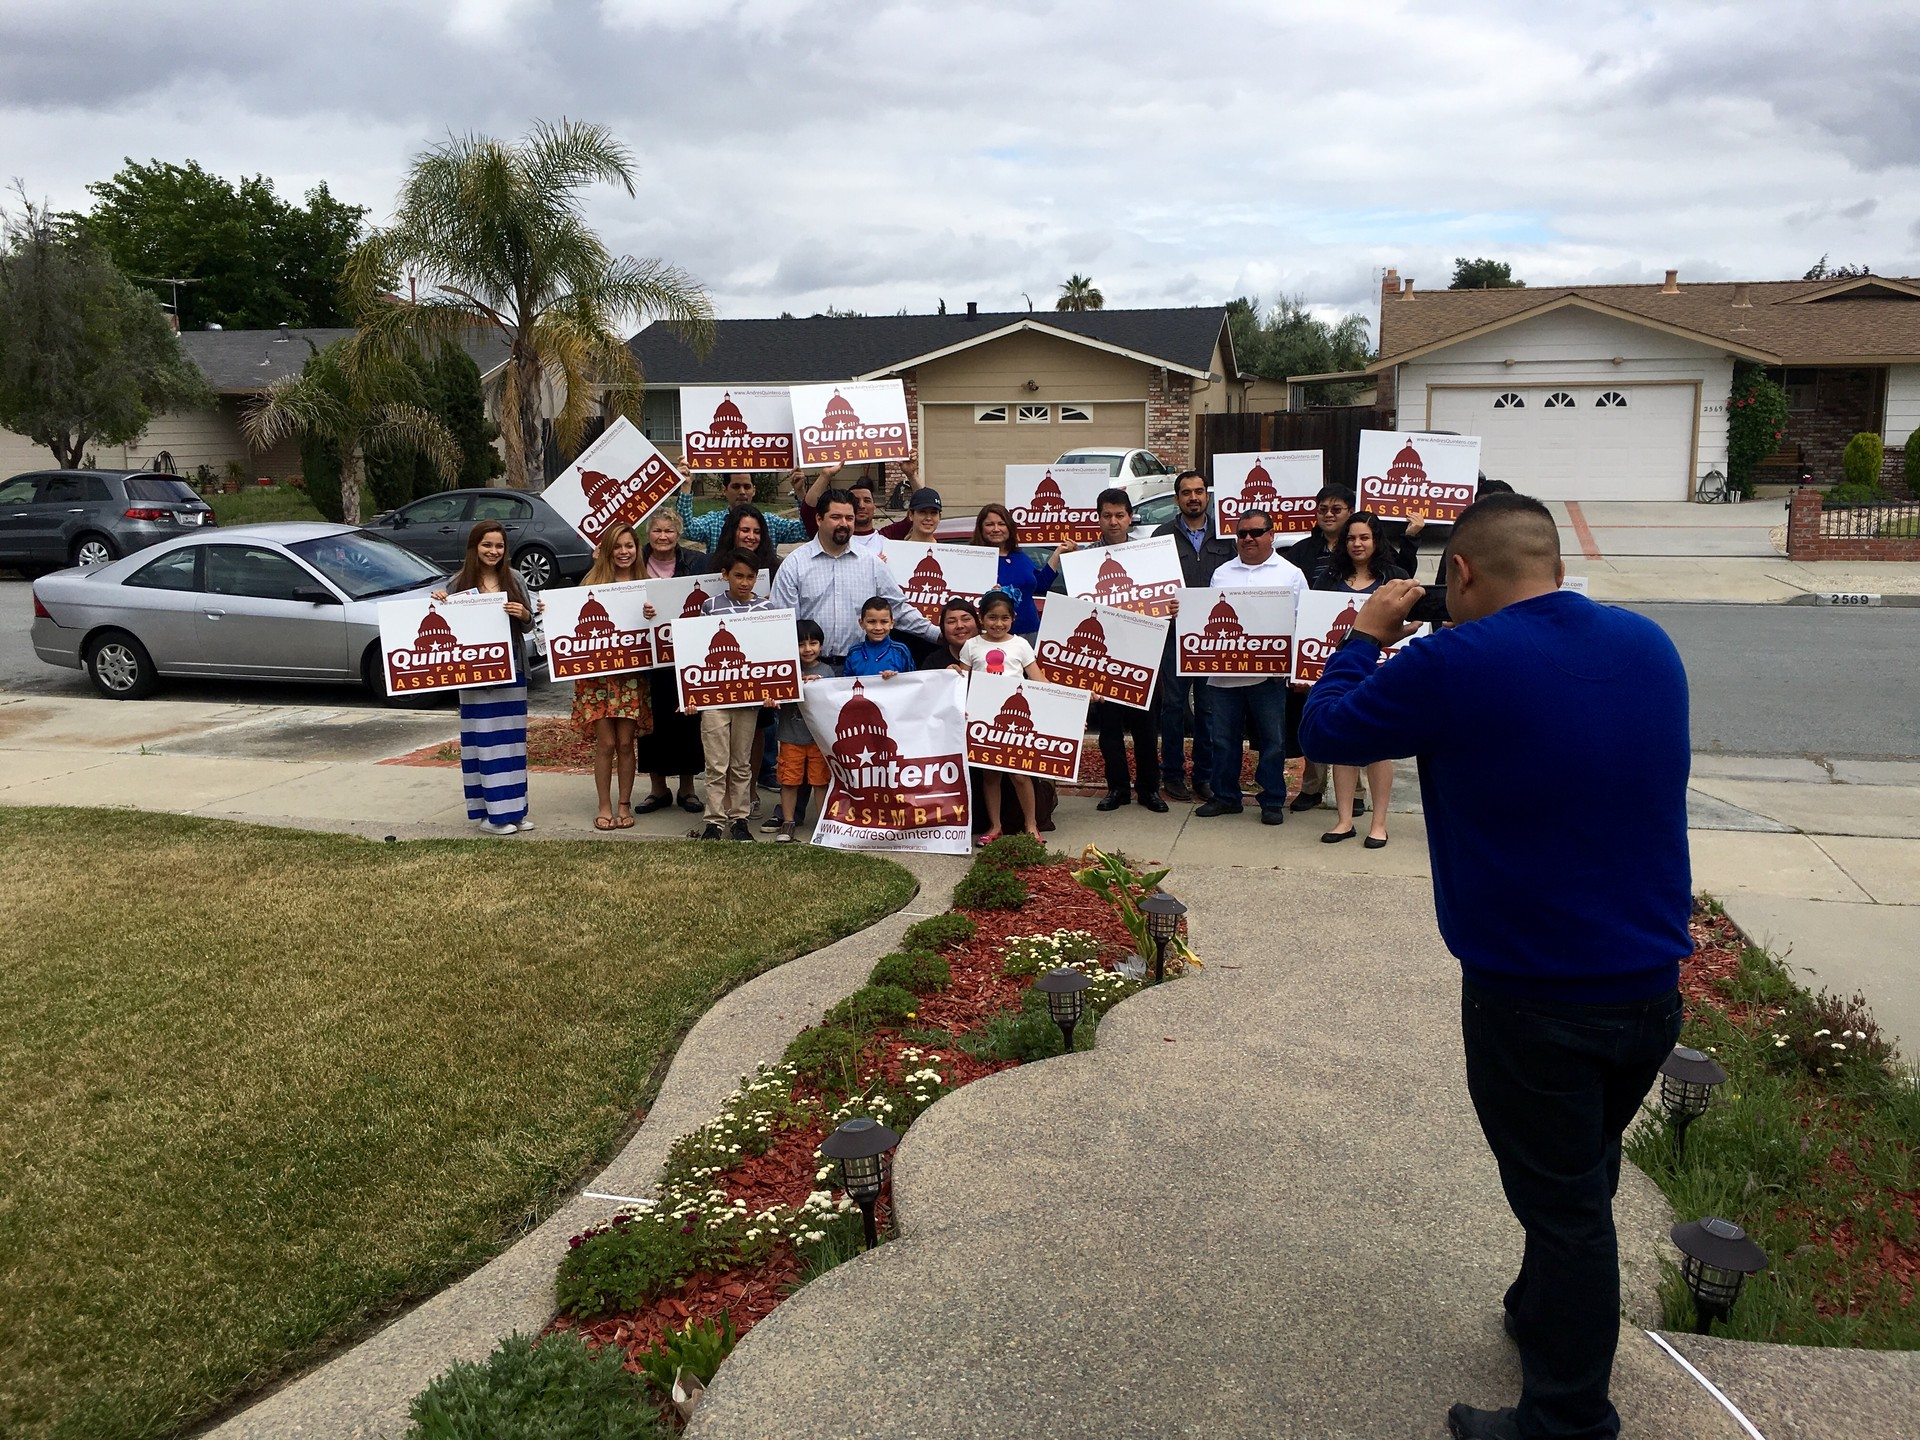 A group shot before volunteers & family members go door-to-door to get out the Latino vote for Assembly candidate Andres Quintero.